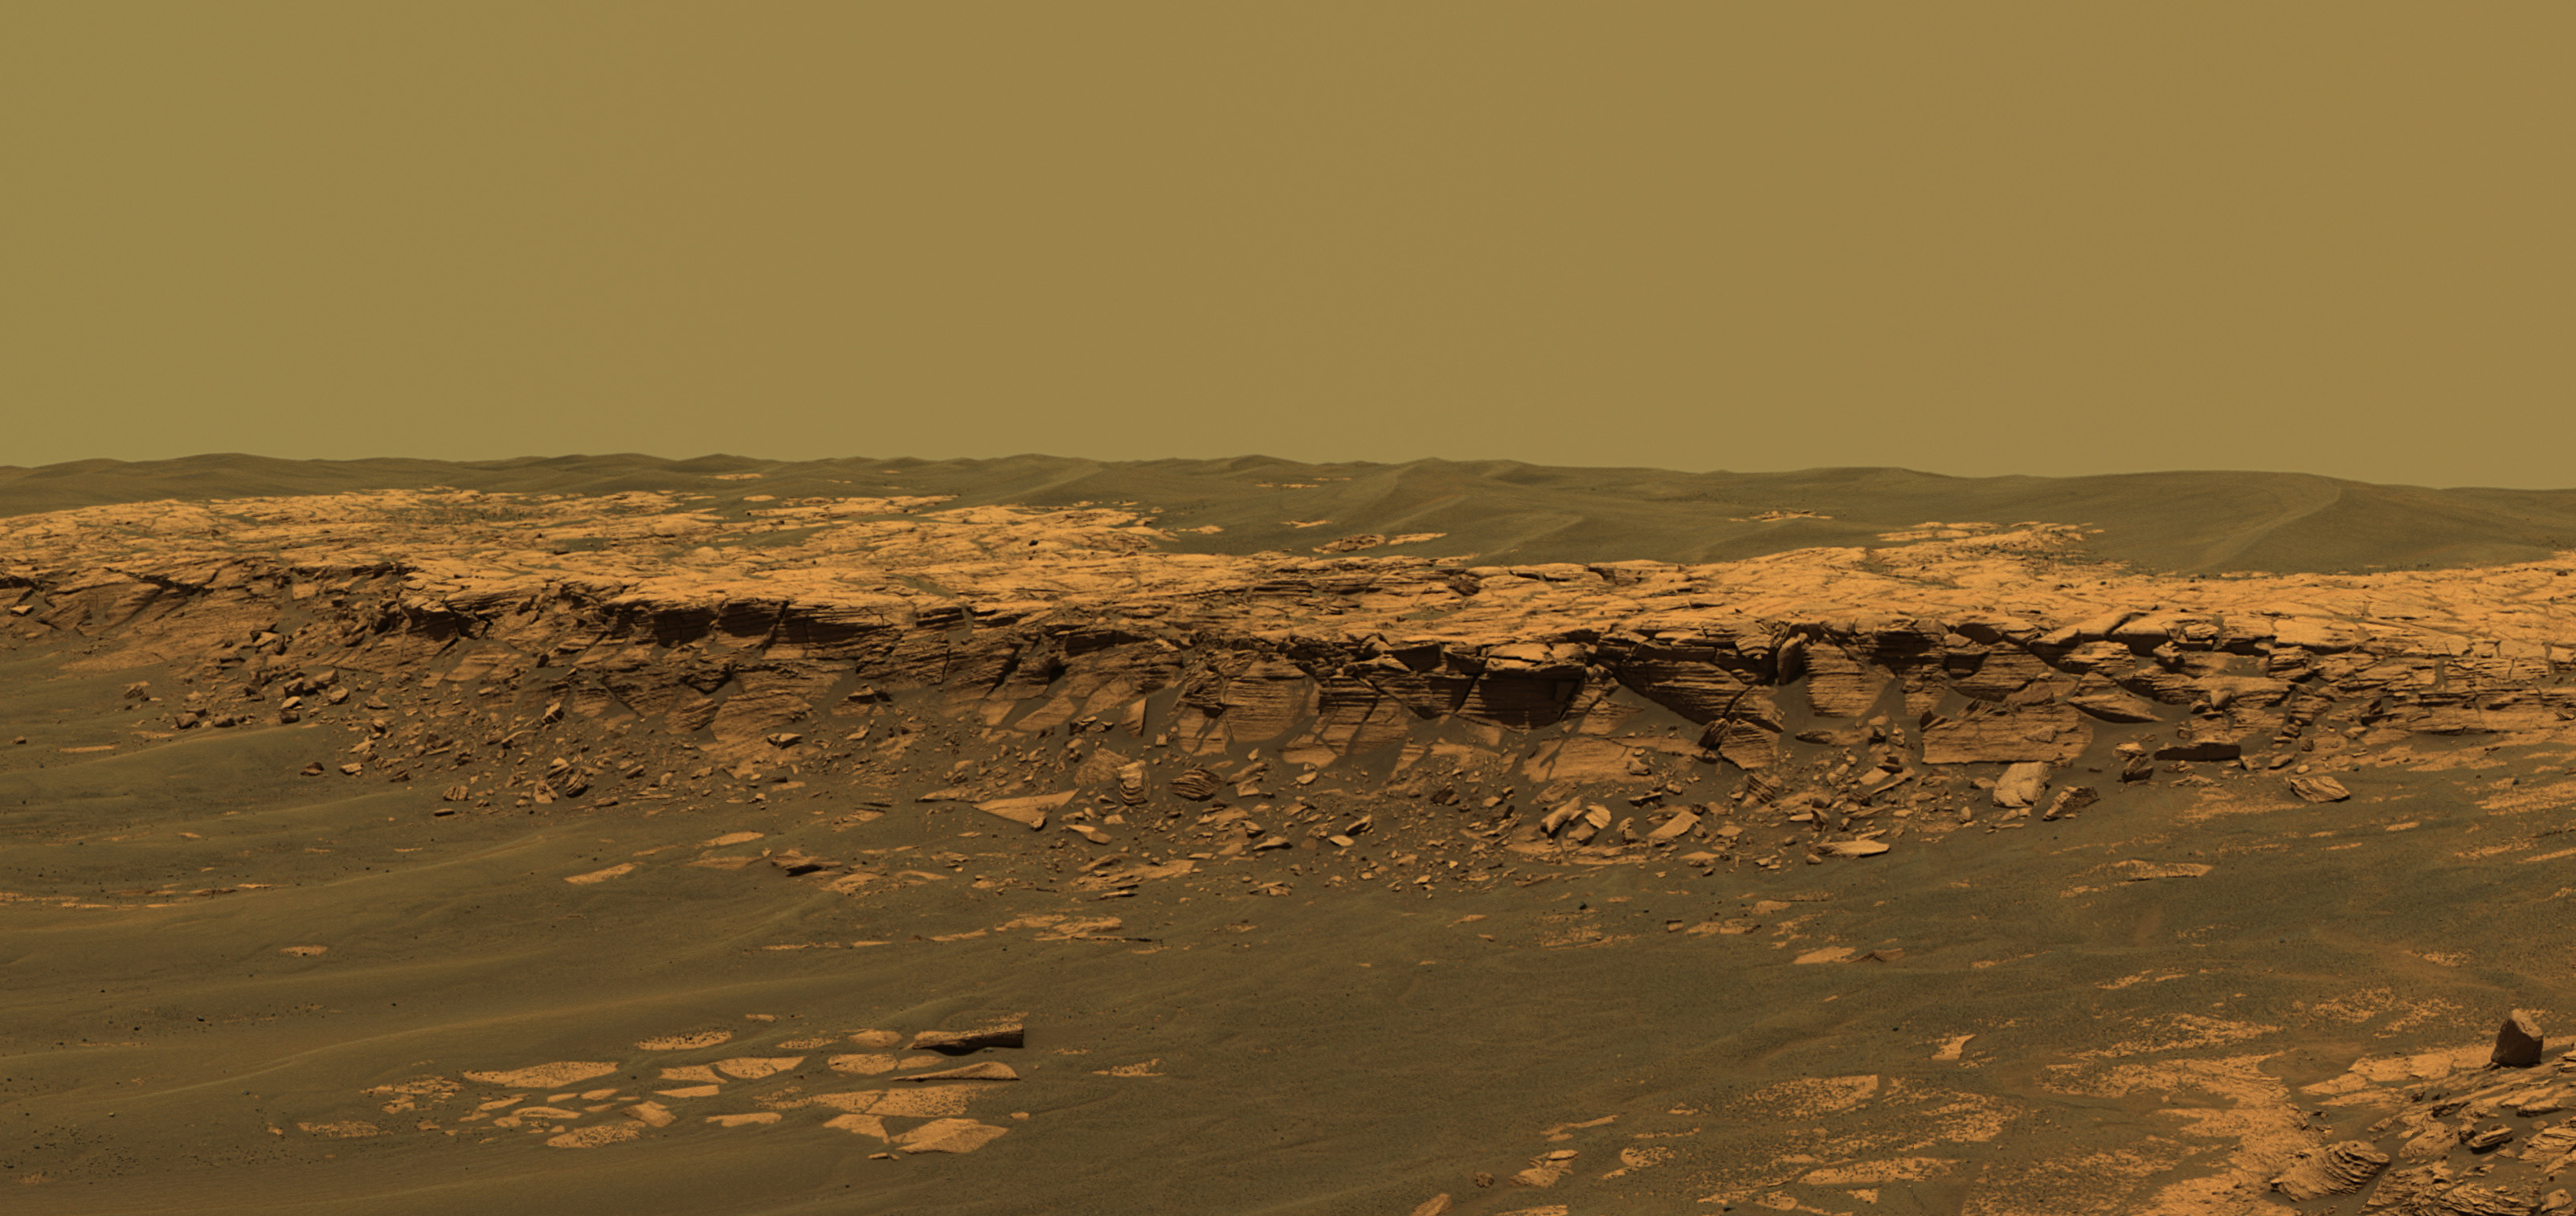 payson_ridge_erebus_crater_mars_opportunity_rover.jpg